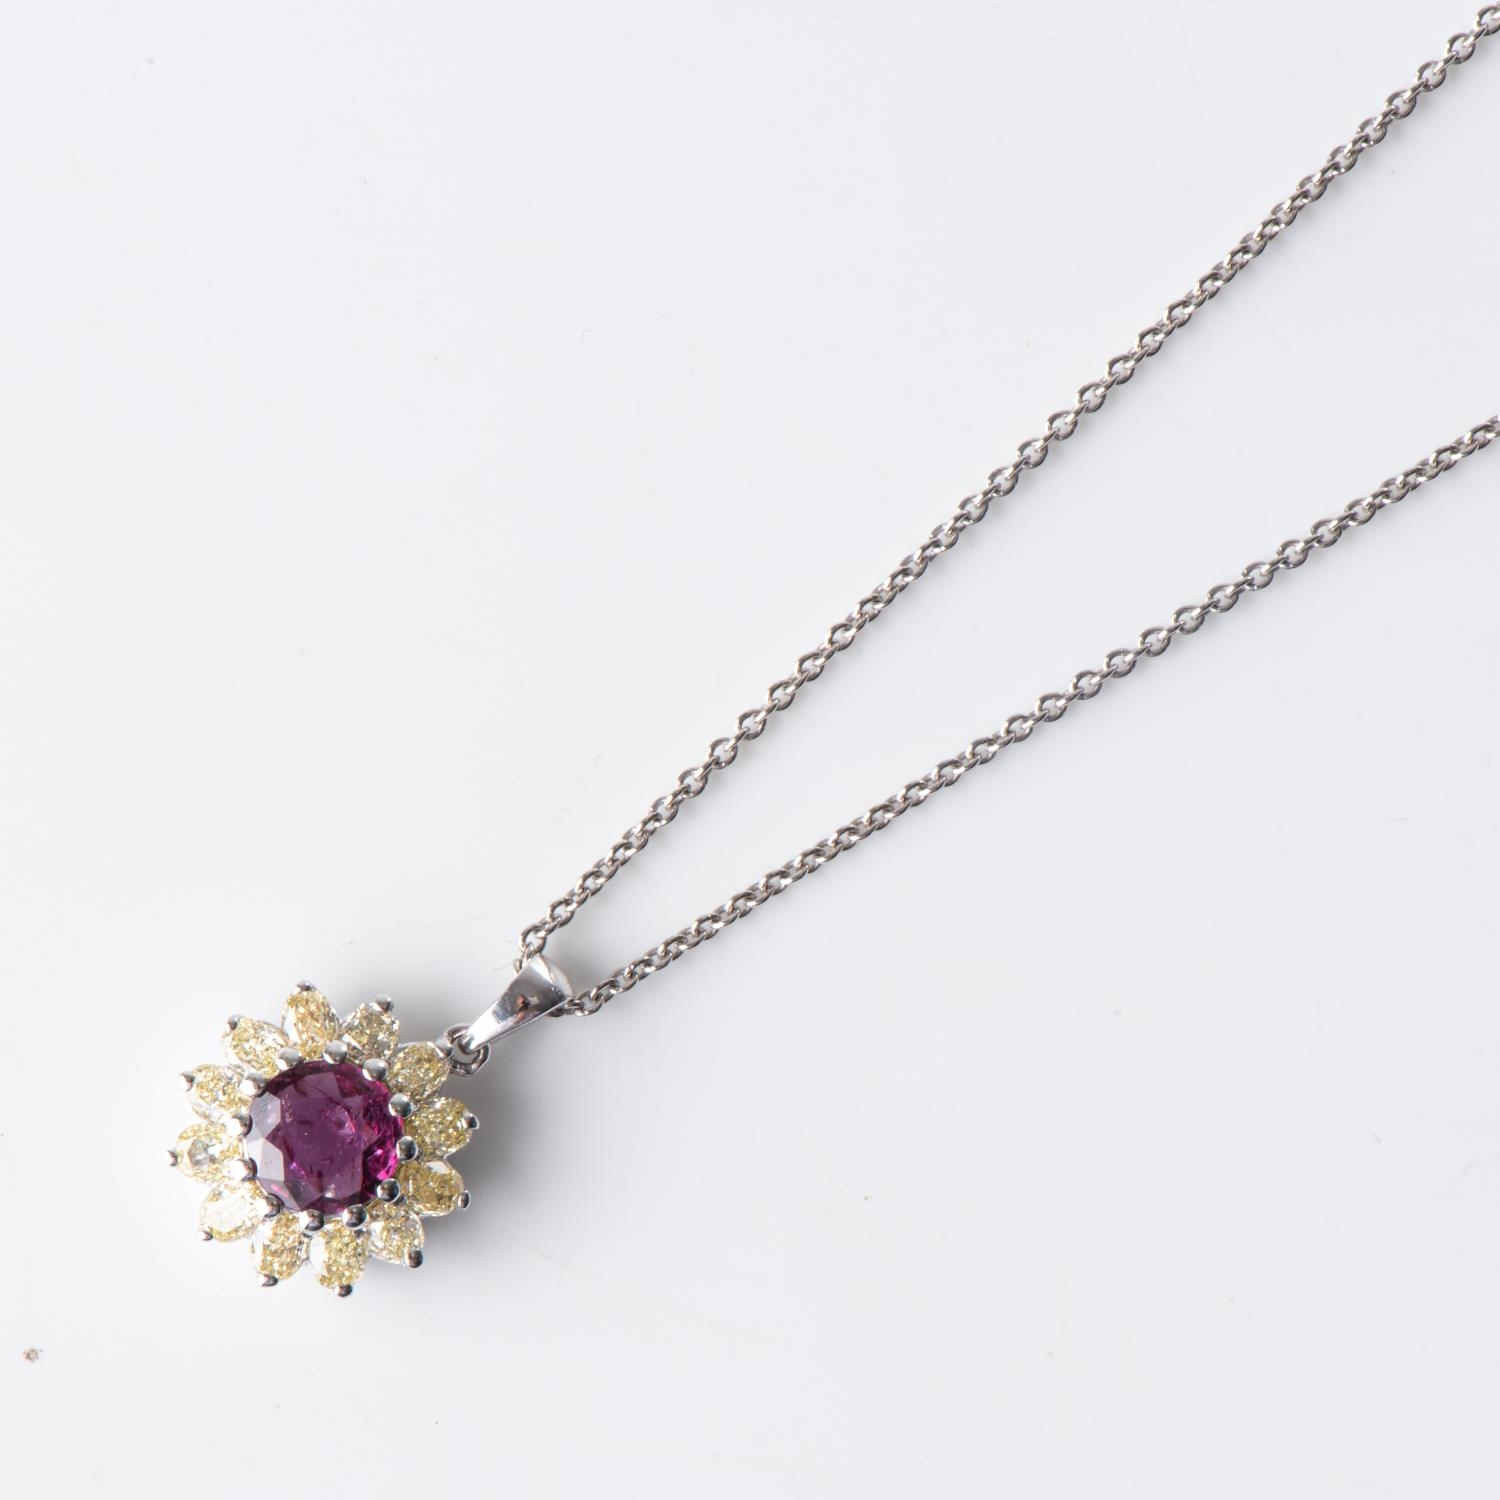 A RUBY PENDANT - Image 2 of 2